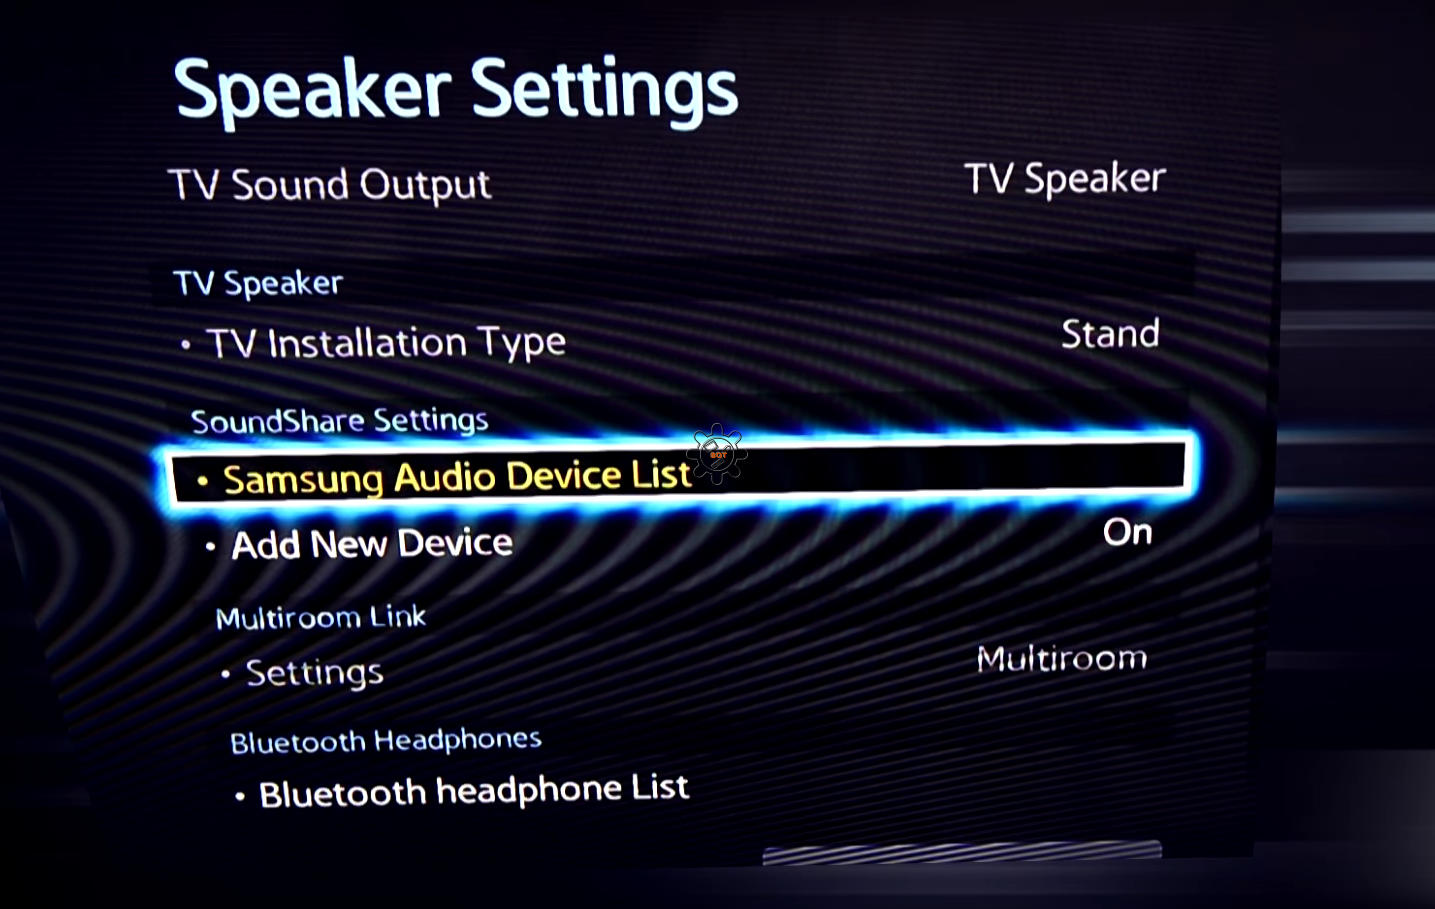 how to connect bluetooth headphones to samsung smart tv